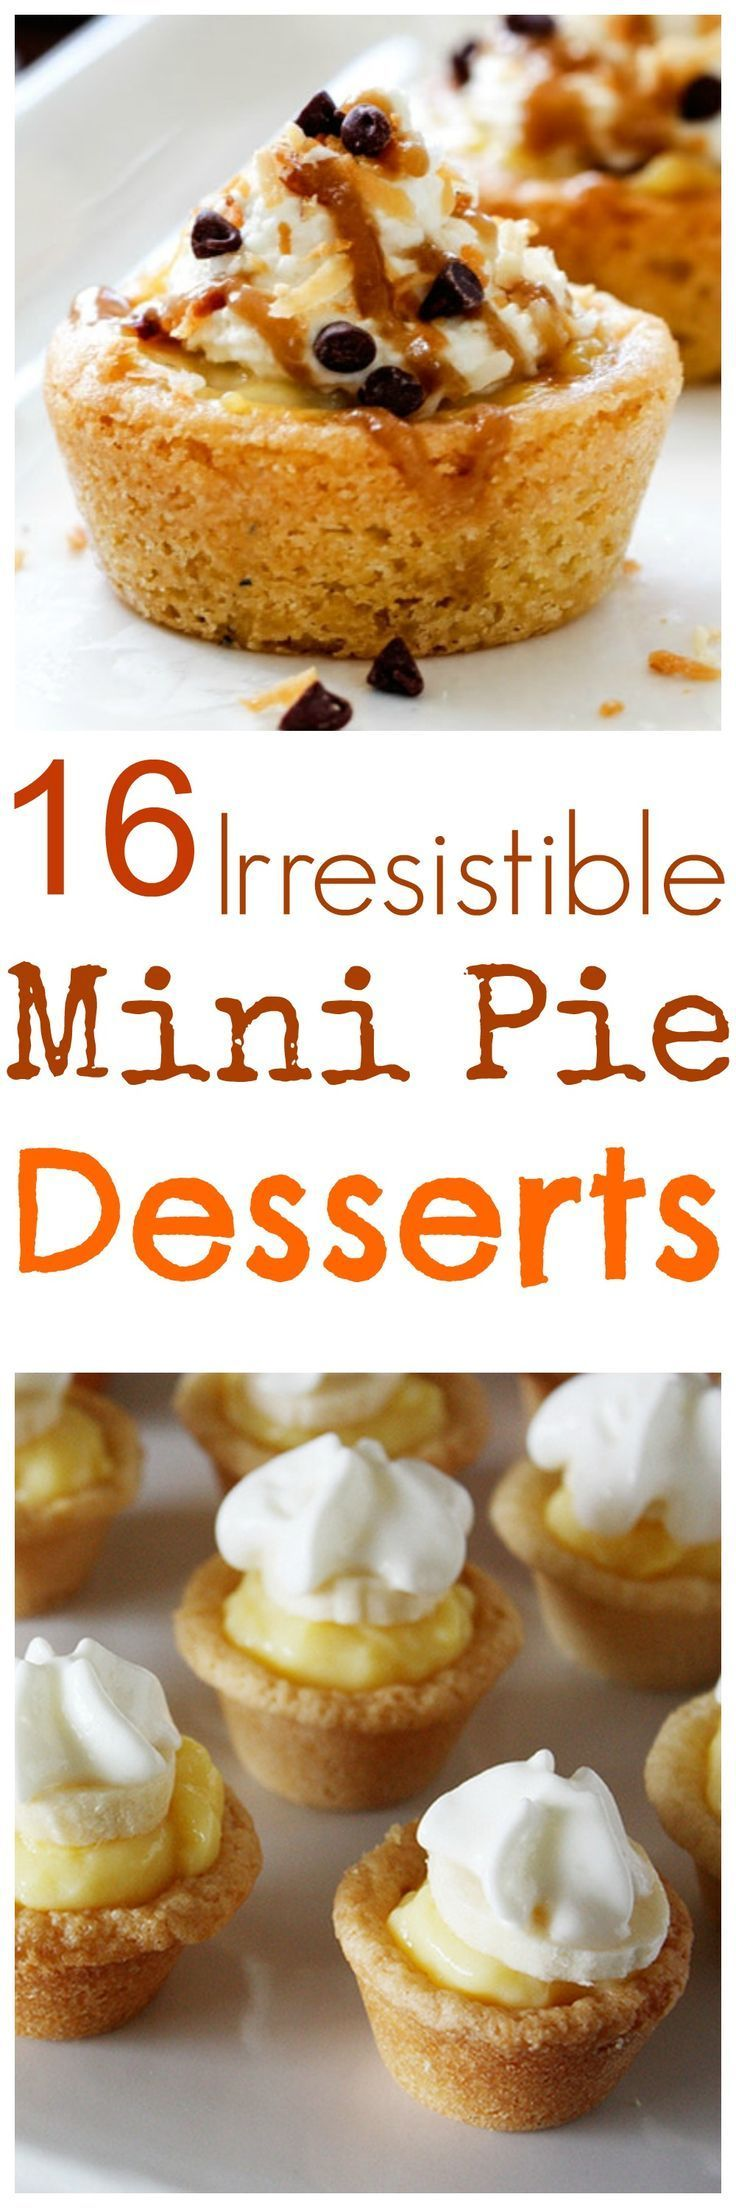 16 Irresistible Mini Pie Desserts 16 Irresistible Mini Pie Desserts need to be part of your celebrations. Everything tastes better when it's served mini. Irresistible Mini Pie Desserts 16 Irresistible Mini Pie Desserts need to be part of your celebrations. Everything tastes better when it's served mini.16 Irresistible Mini Pie Desserts need to be part of your celebrations. Everything tastes better when it's served mini.